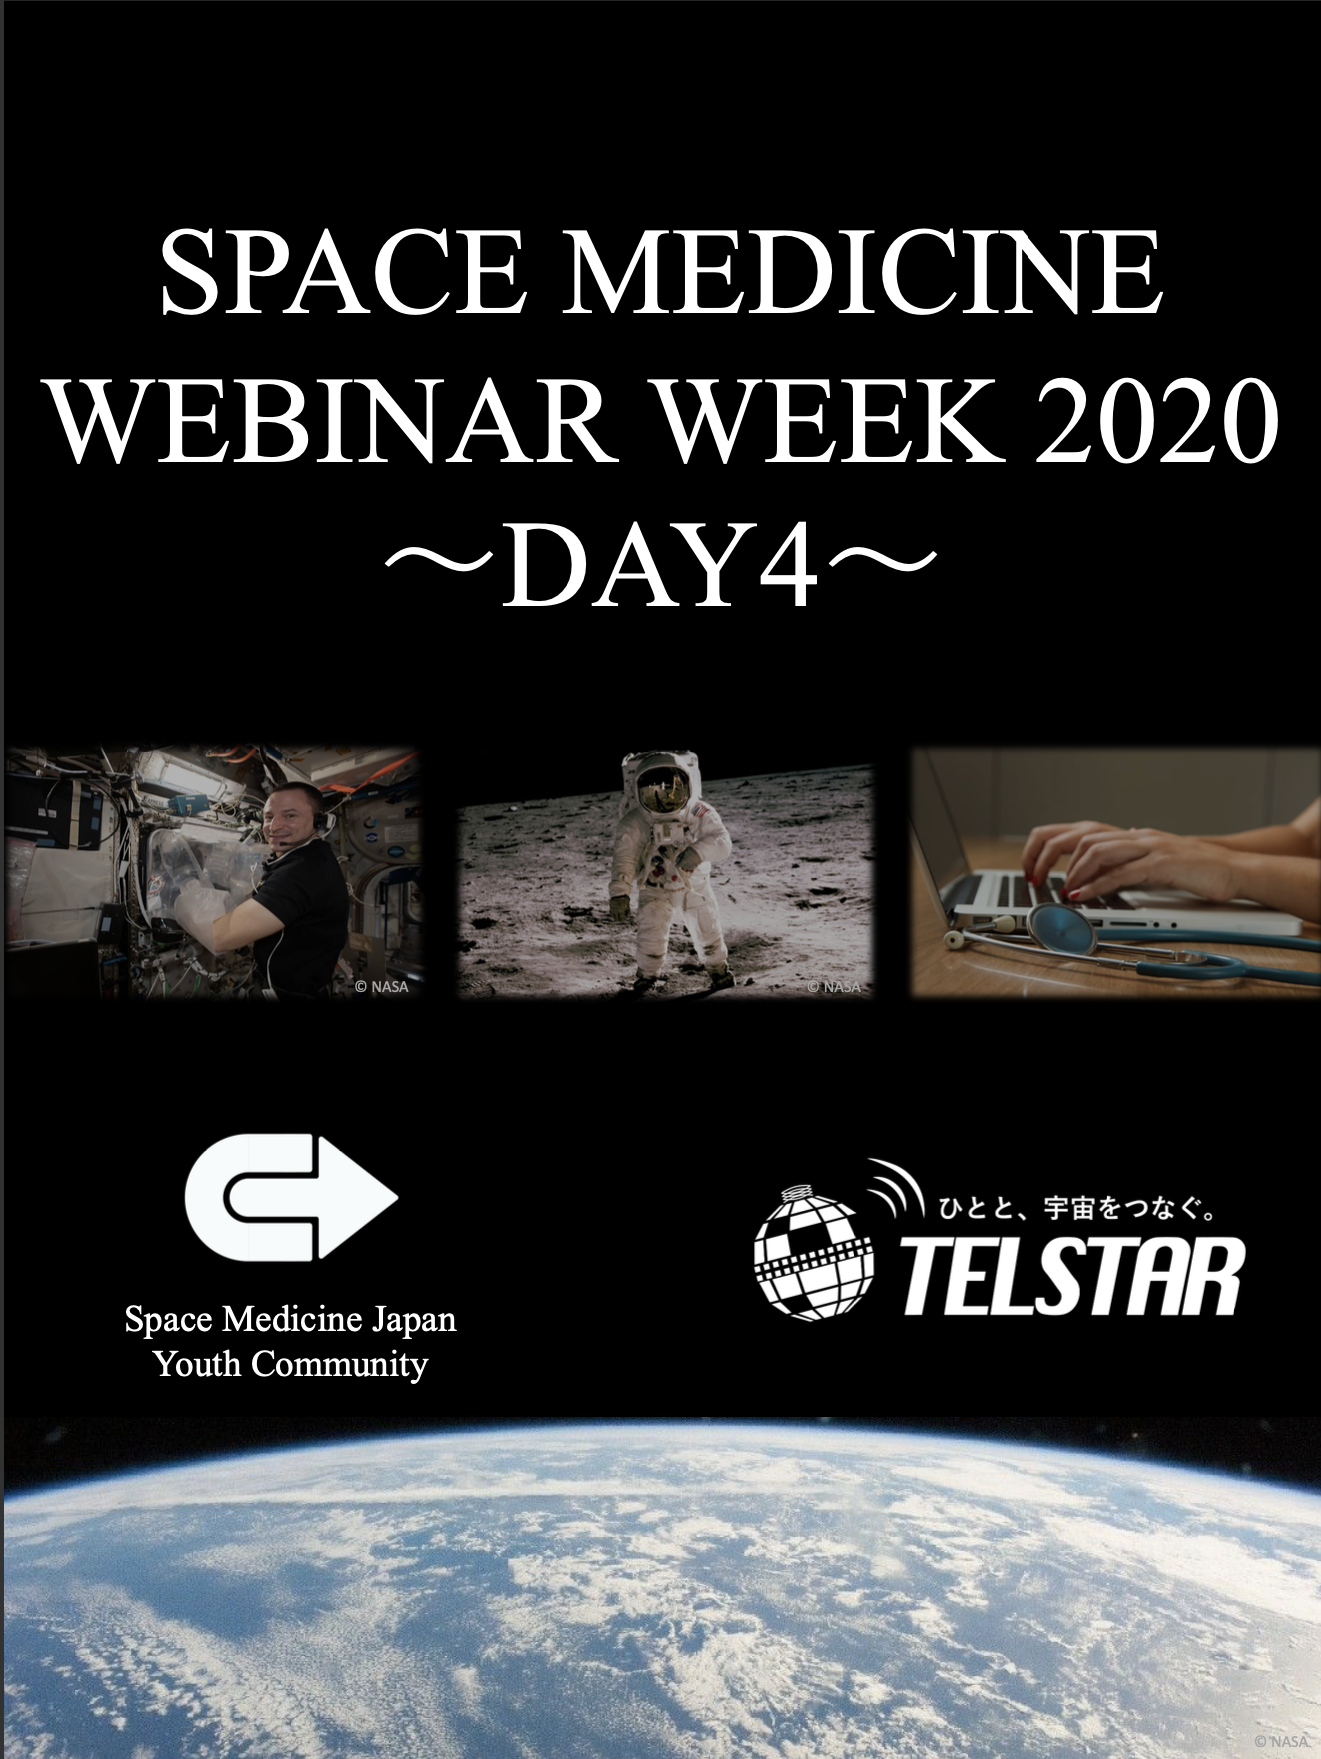 「医」を「宇宙」で。 〜SPACE MEDICINE WEBINAR WEEK 2020 DAY4 〜